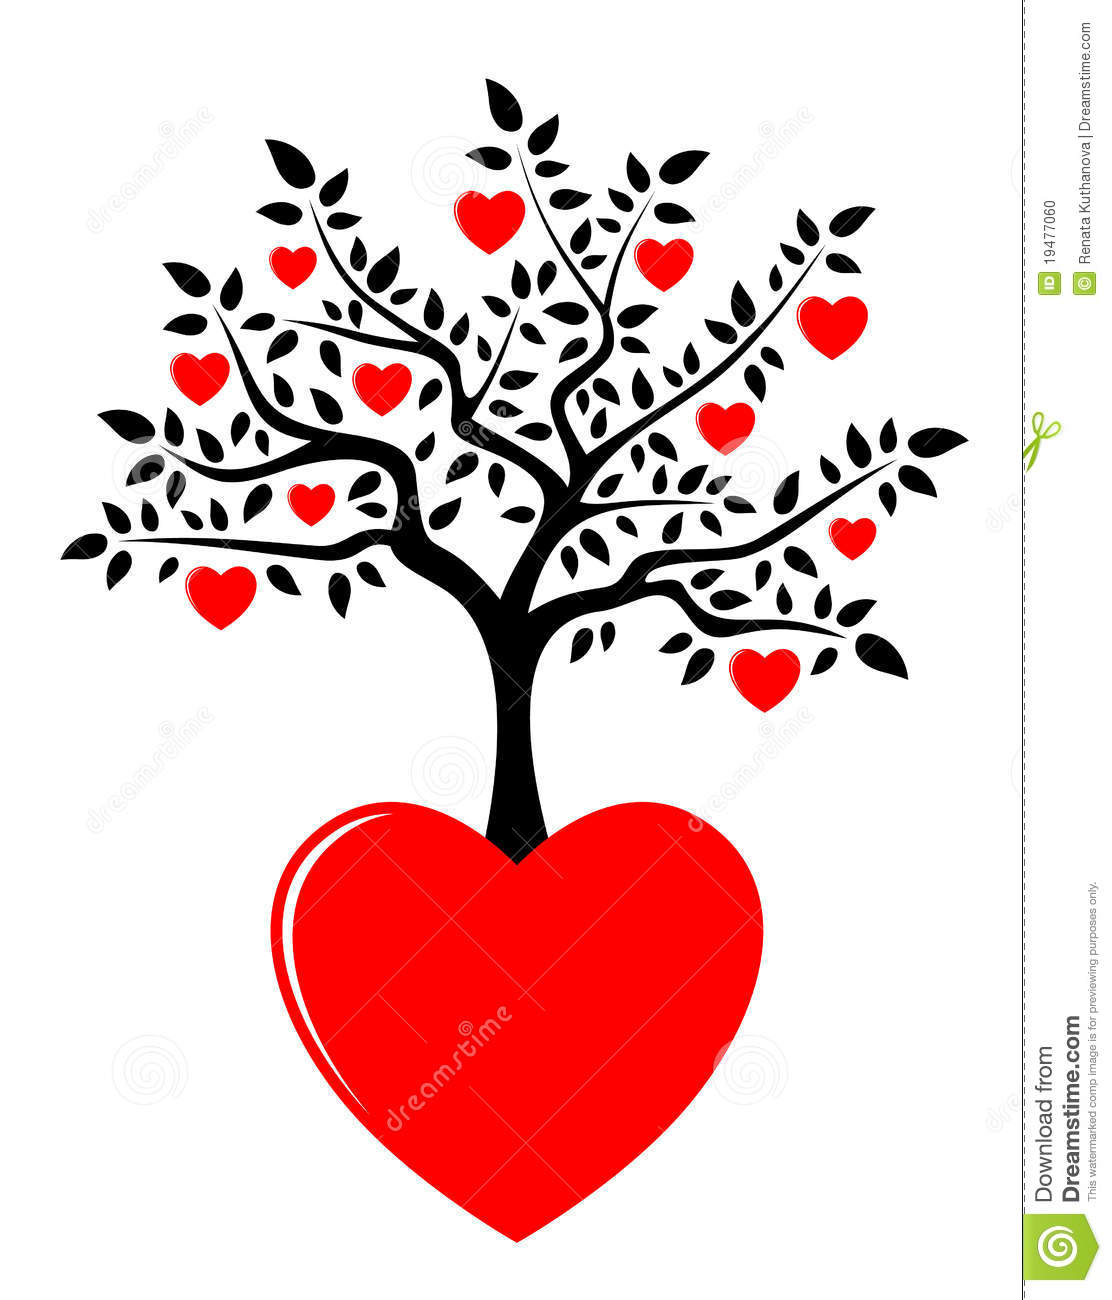 heart tree growing from heart stock vector illustration romance clip art with peach and grey color romantic clip art free